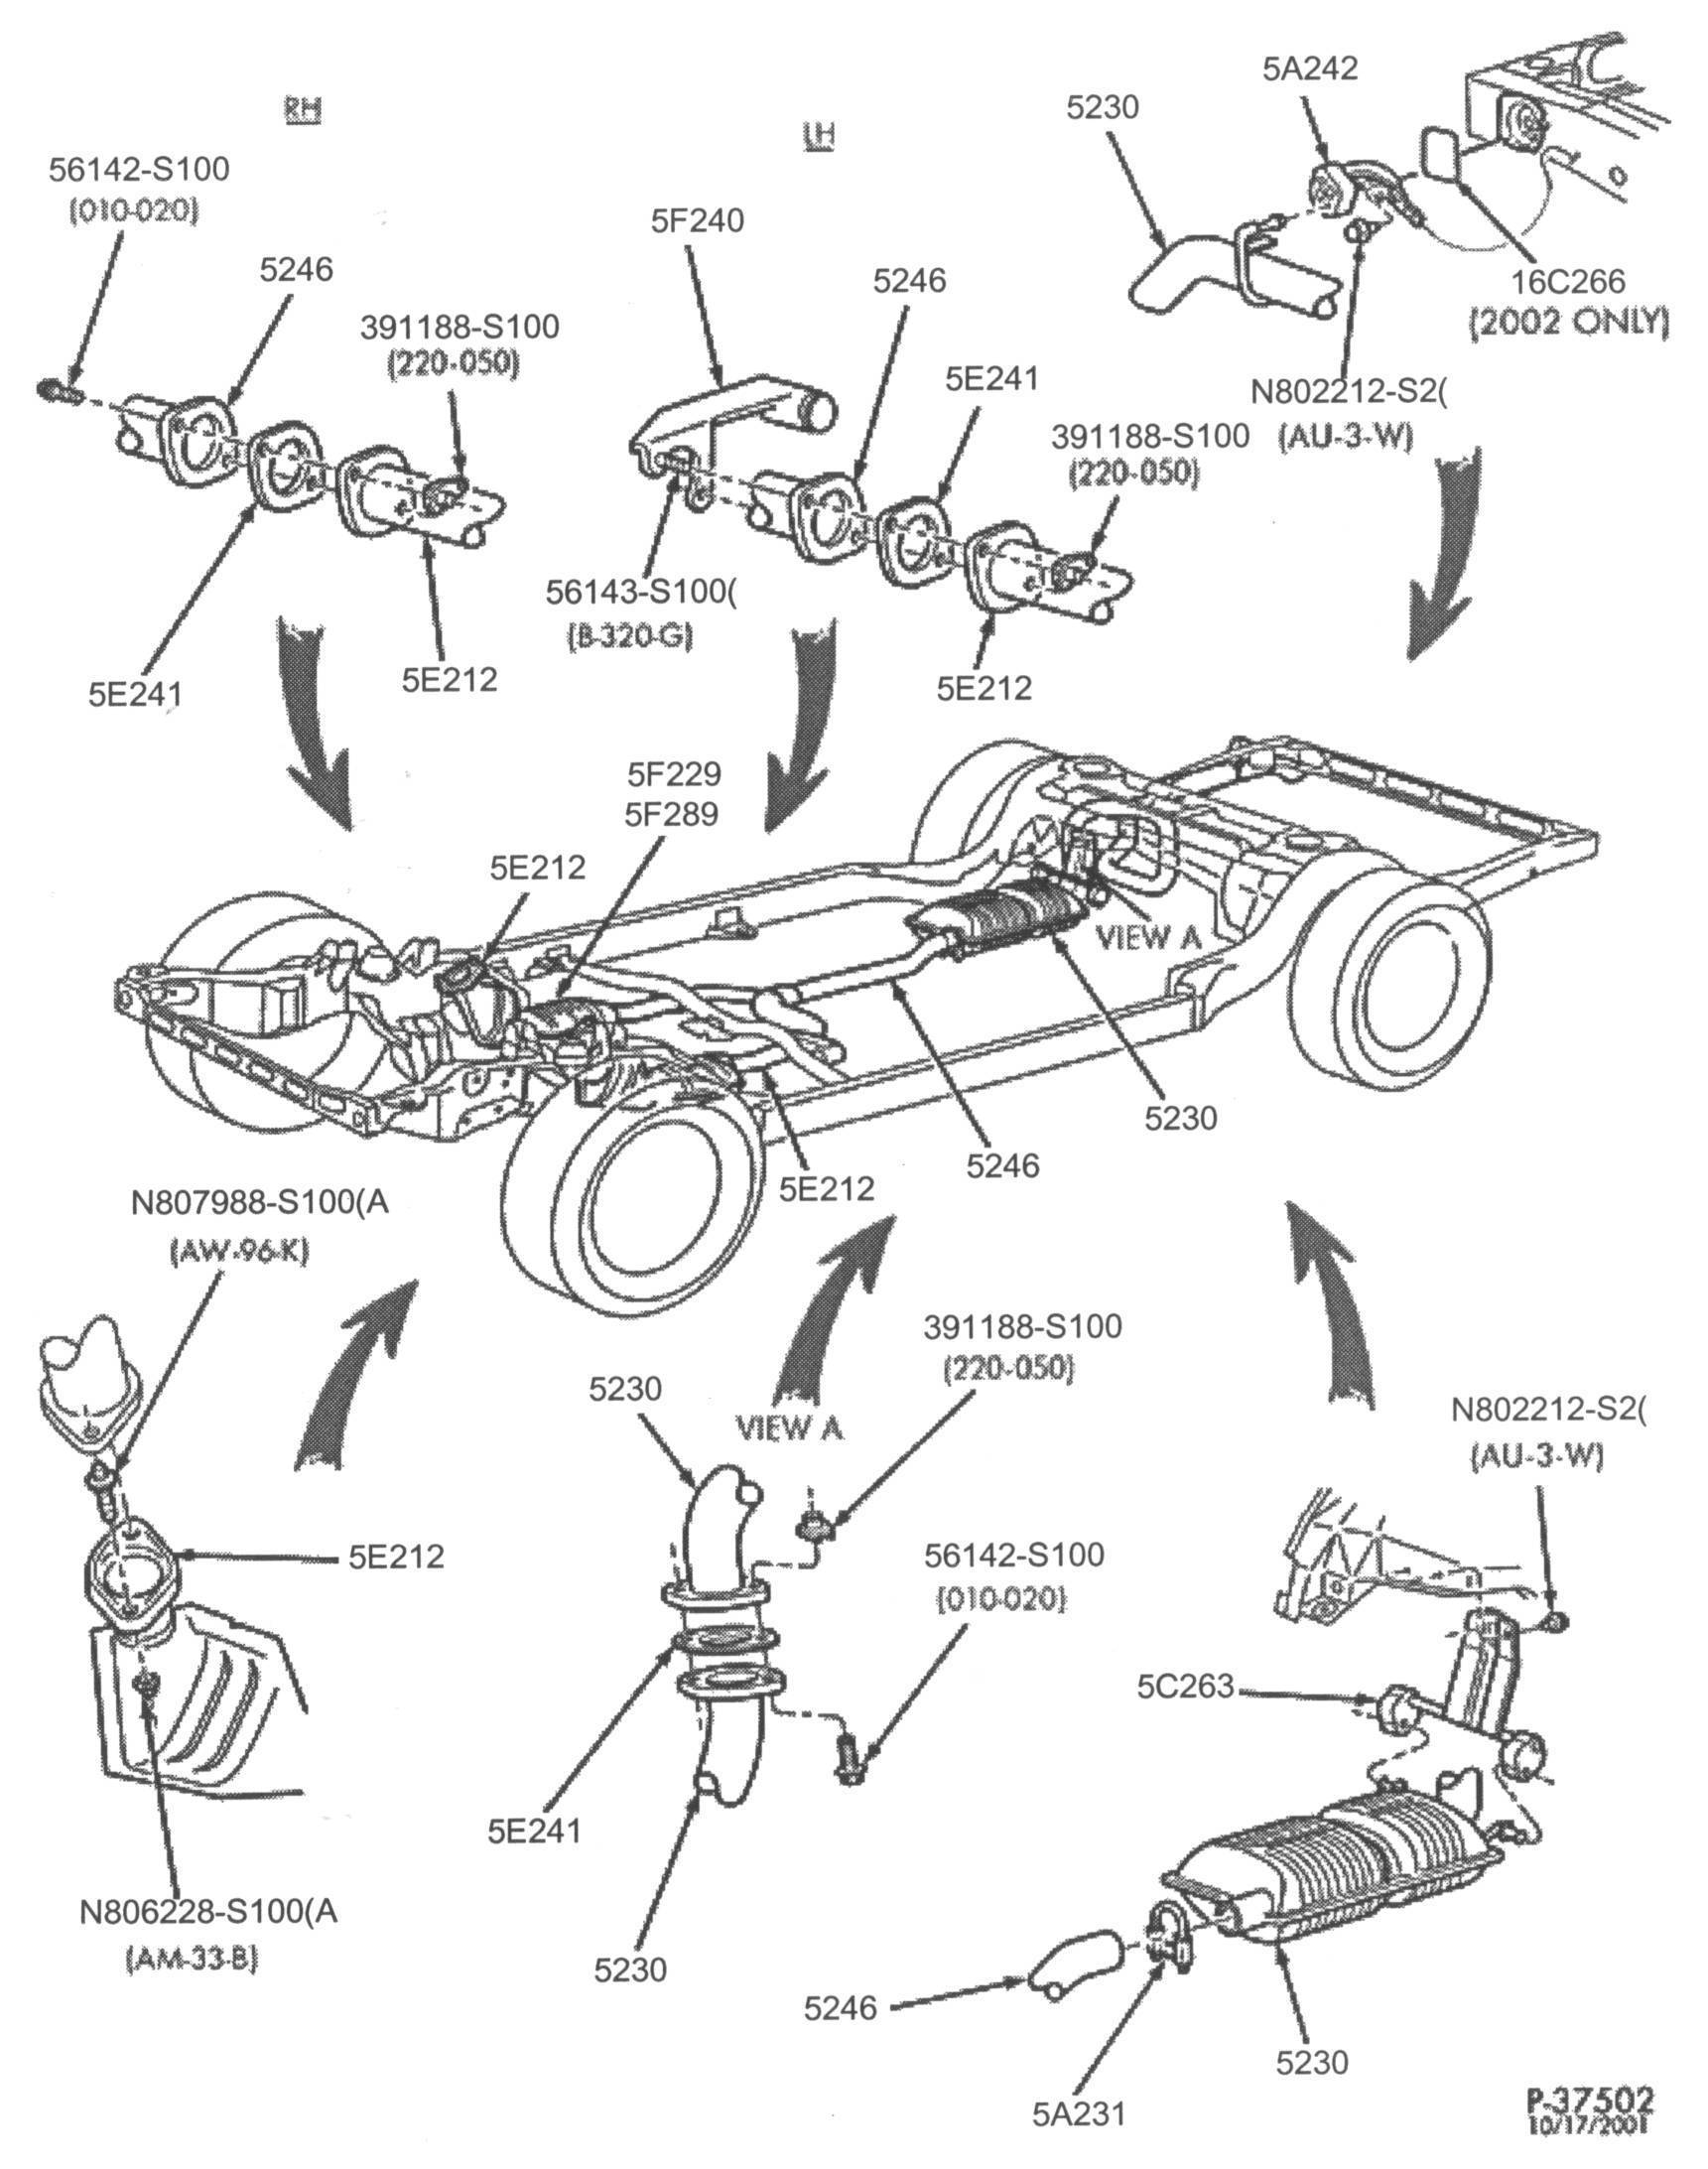 Below are some parts diagrams for original equipment ford exhaust system service parts that can be purchased at your local ford dealer